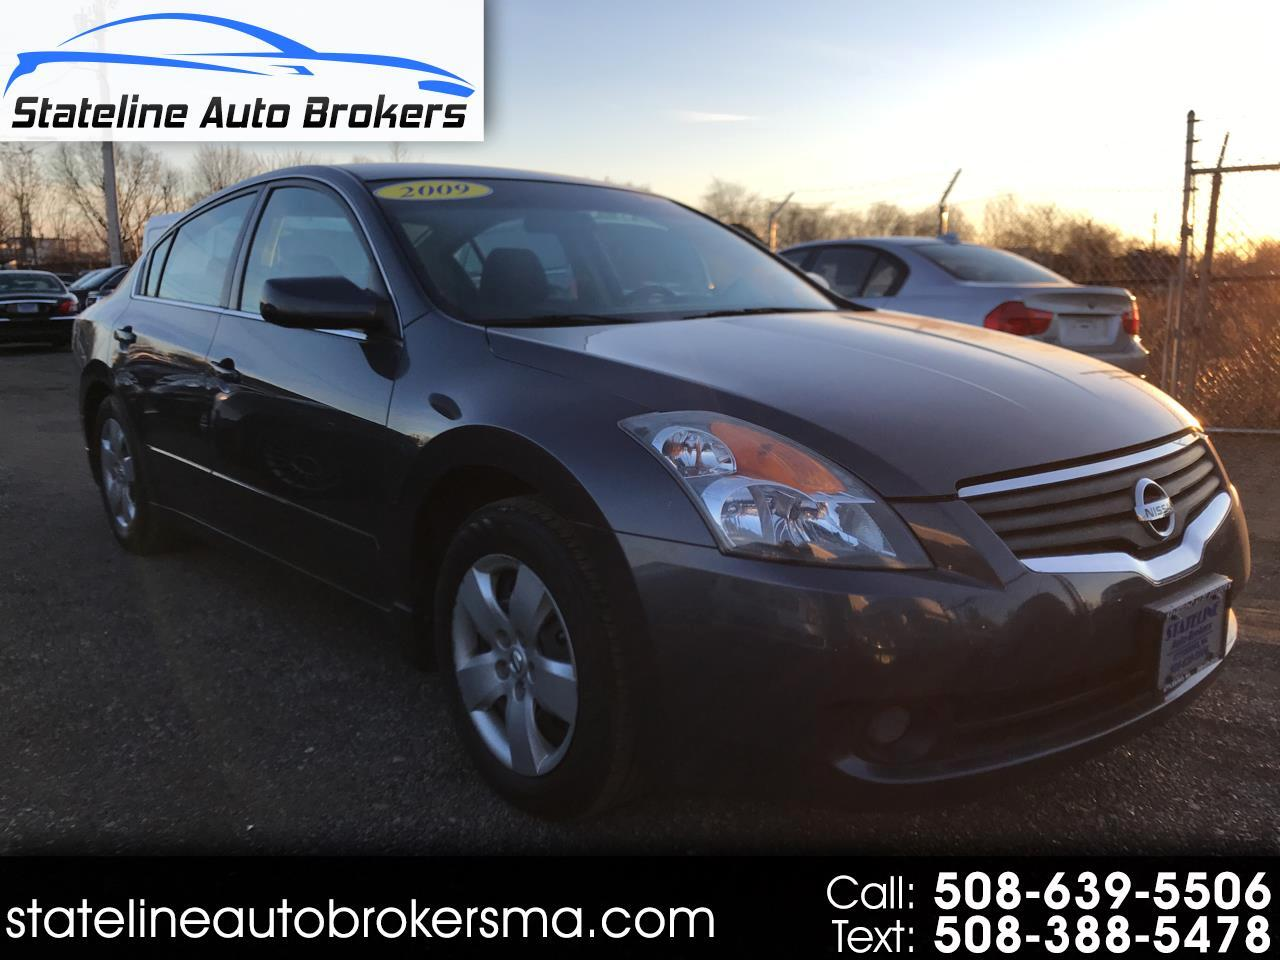 2008 Nissan Altima 4dr Sdn 2.5 Manual